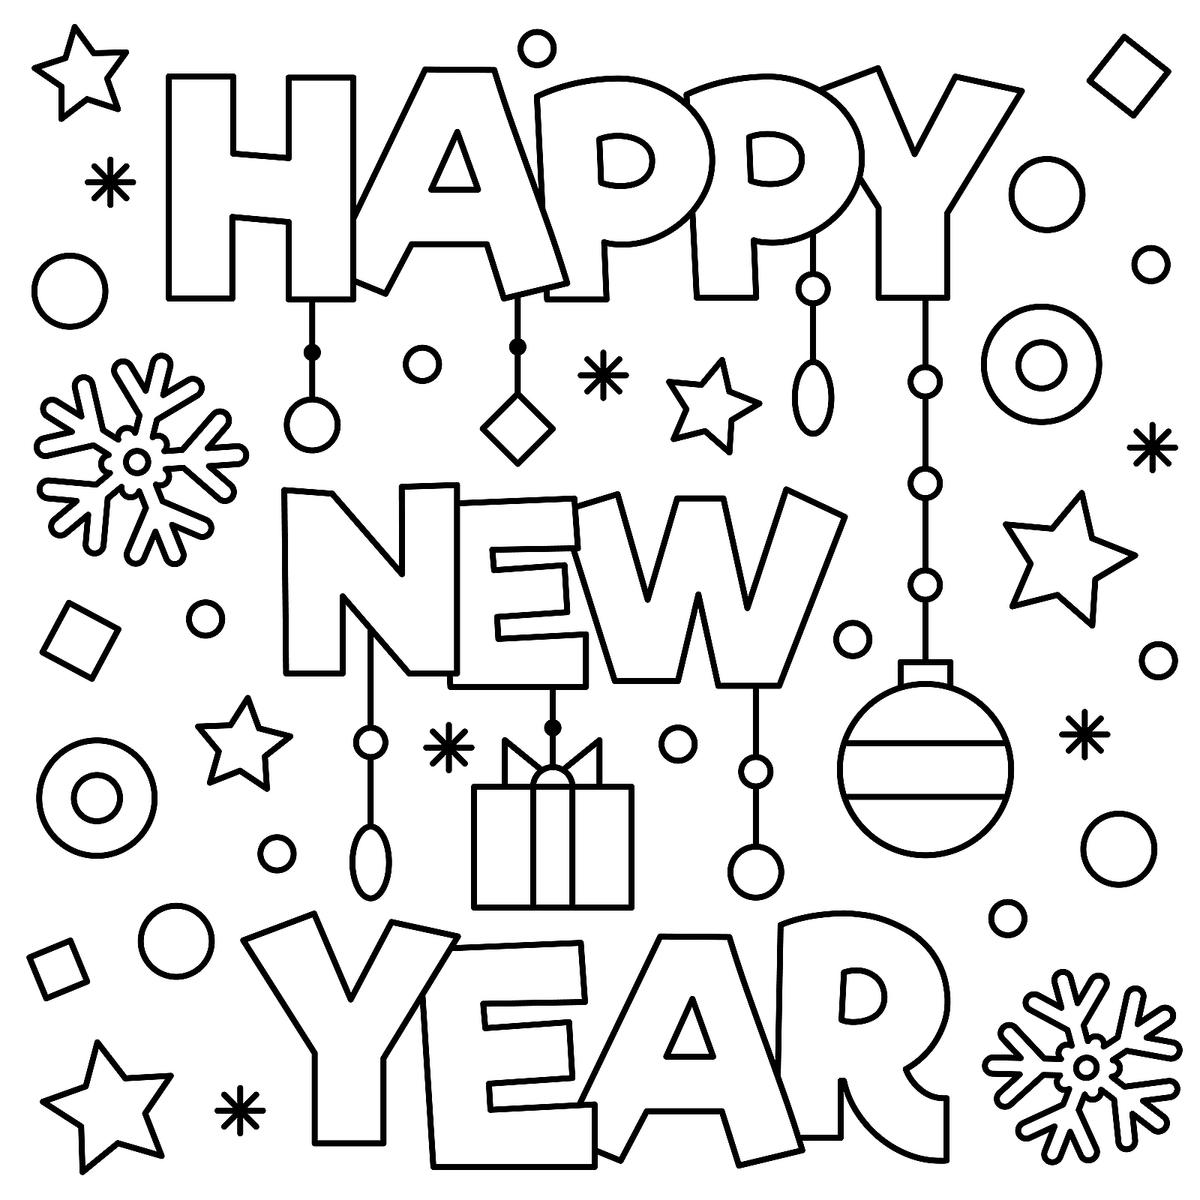 Fun Coloring Pages To Print New Year & January Coloring Pages Printable Fun To Help Kids .